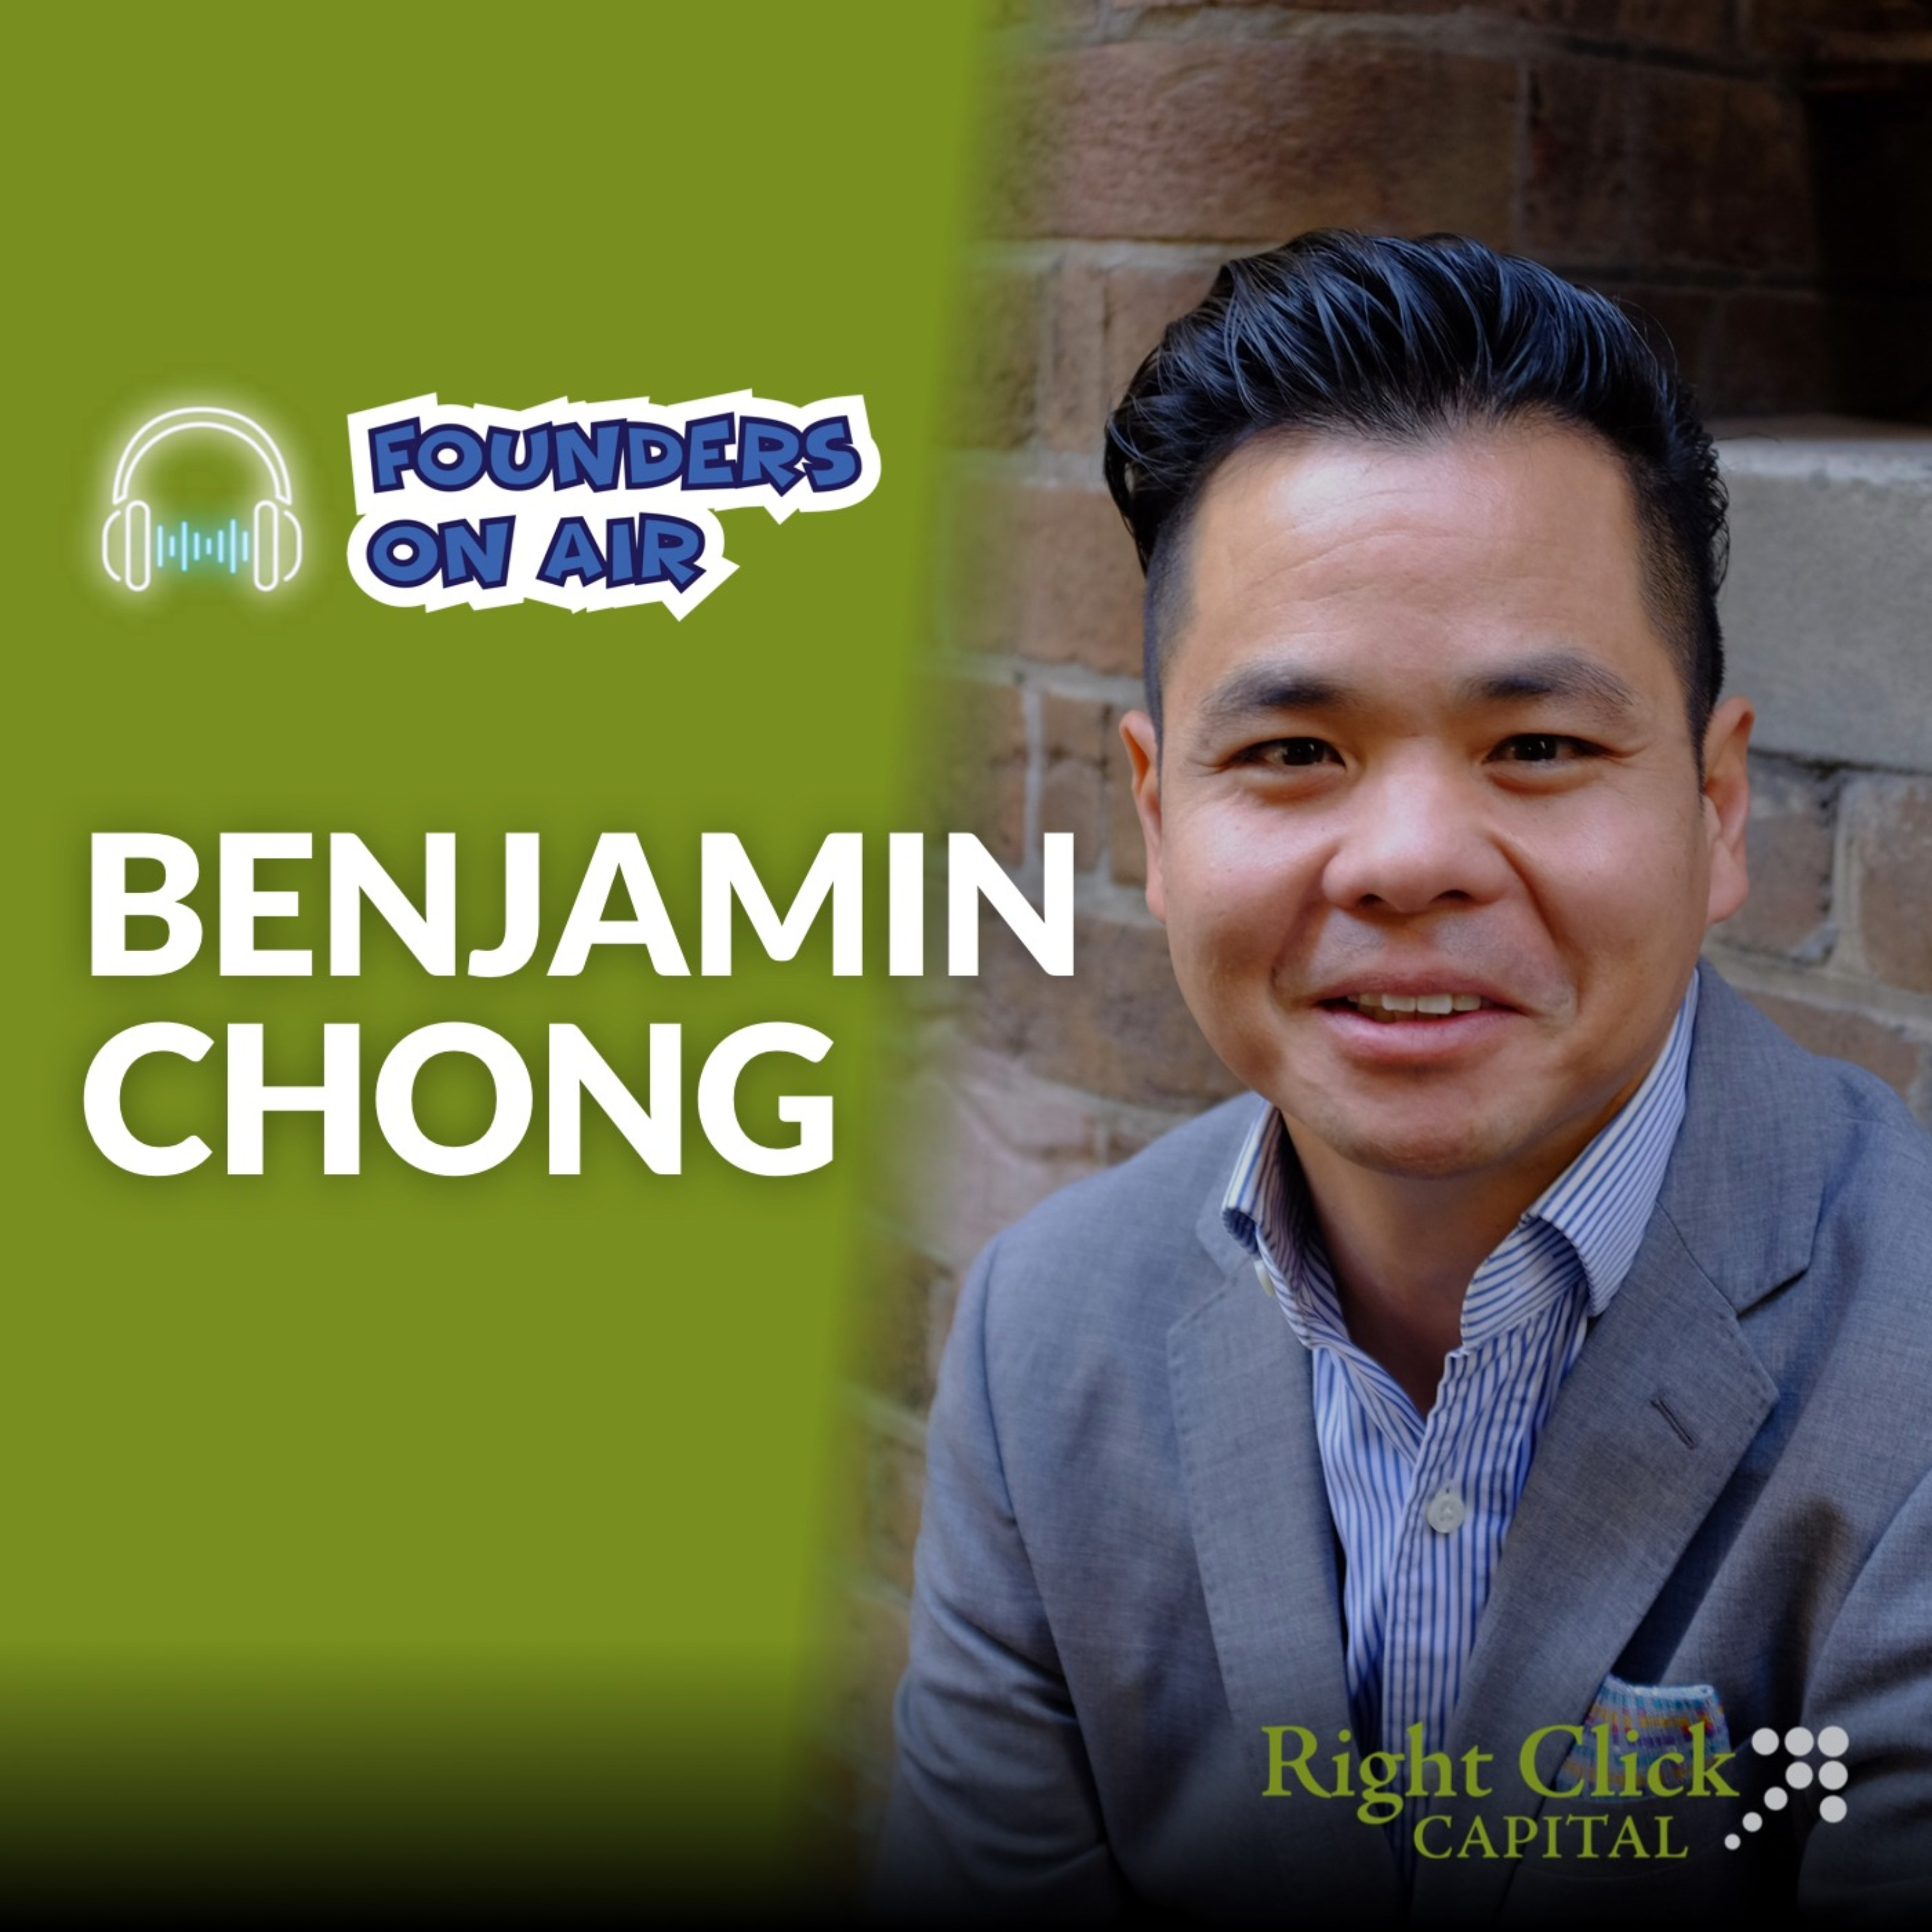 Interview with Benjamin Chong, partner @ Right Click Capital (Business Podcast)